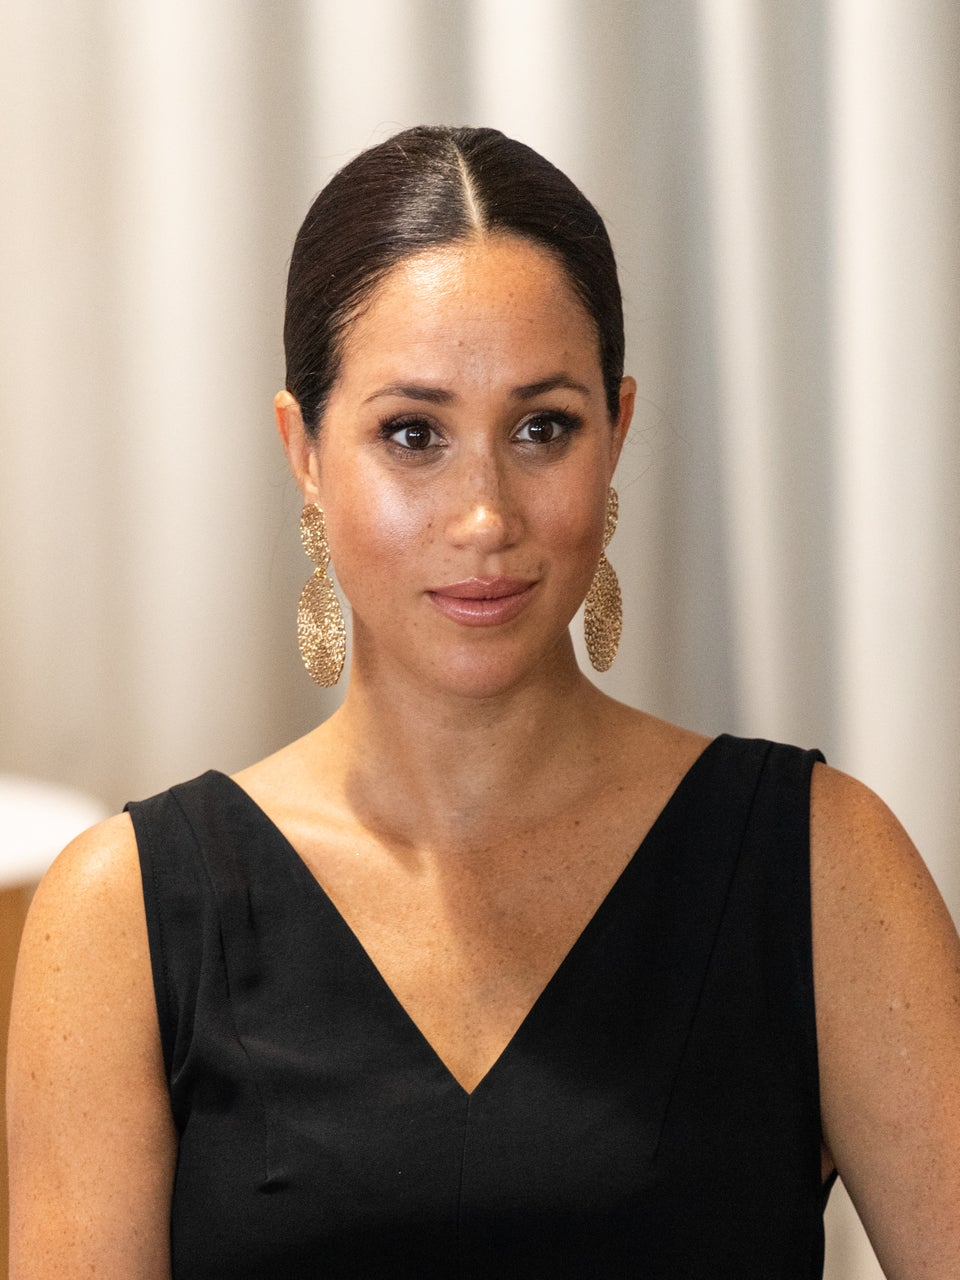 Meghan, Duchess of Sussex, Pays Tribute To Murdered South African Student